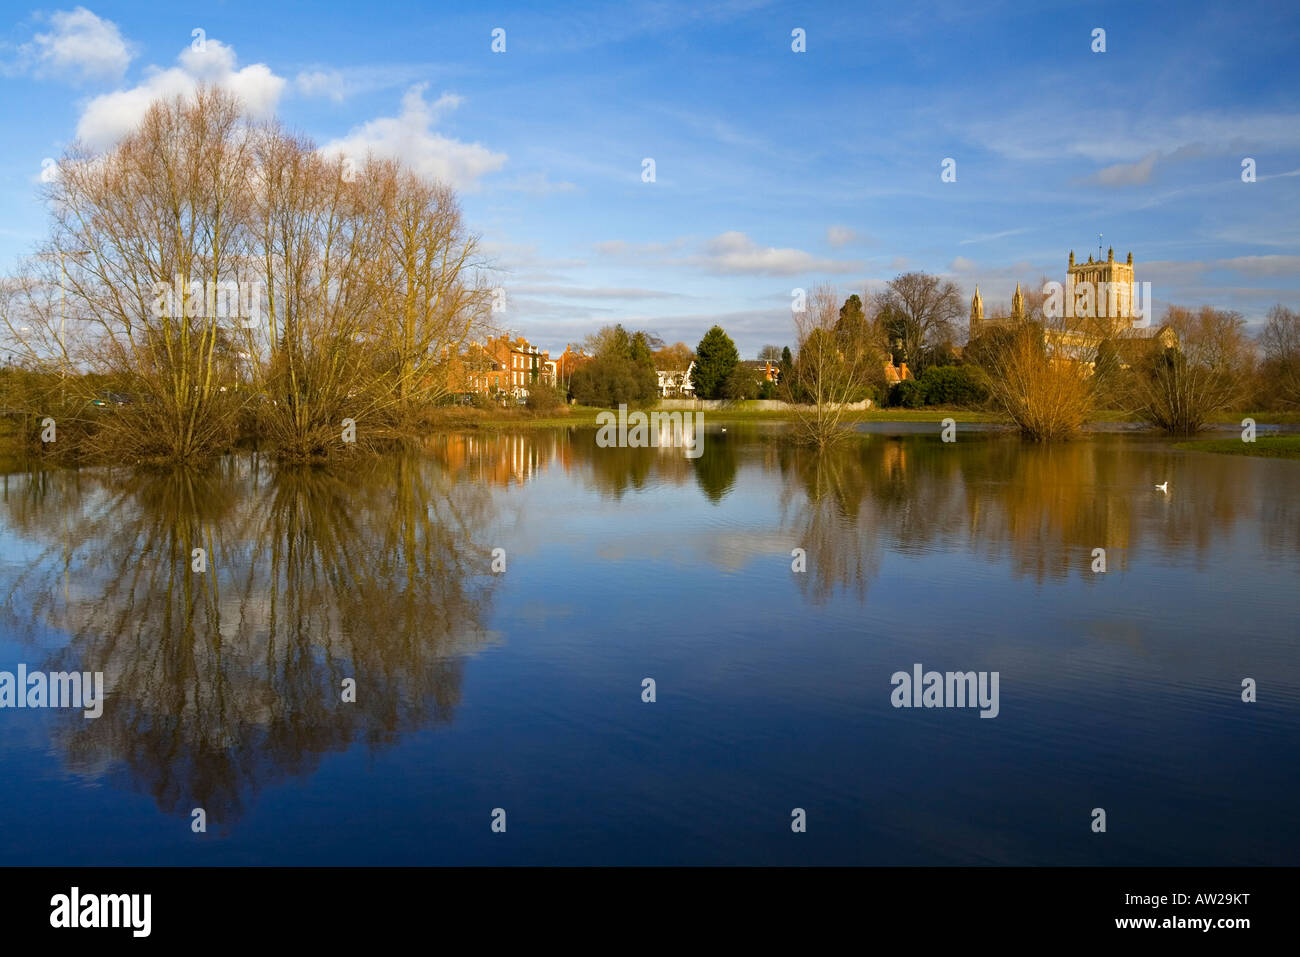 Tewkesbury Abbey St Mary the Virgin Church Gloucestershire England UK with tower reflected in flood water in foreground - Stock Image